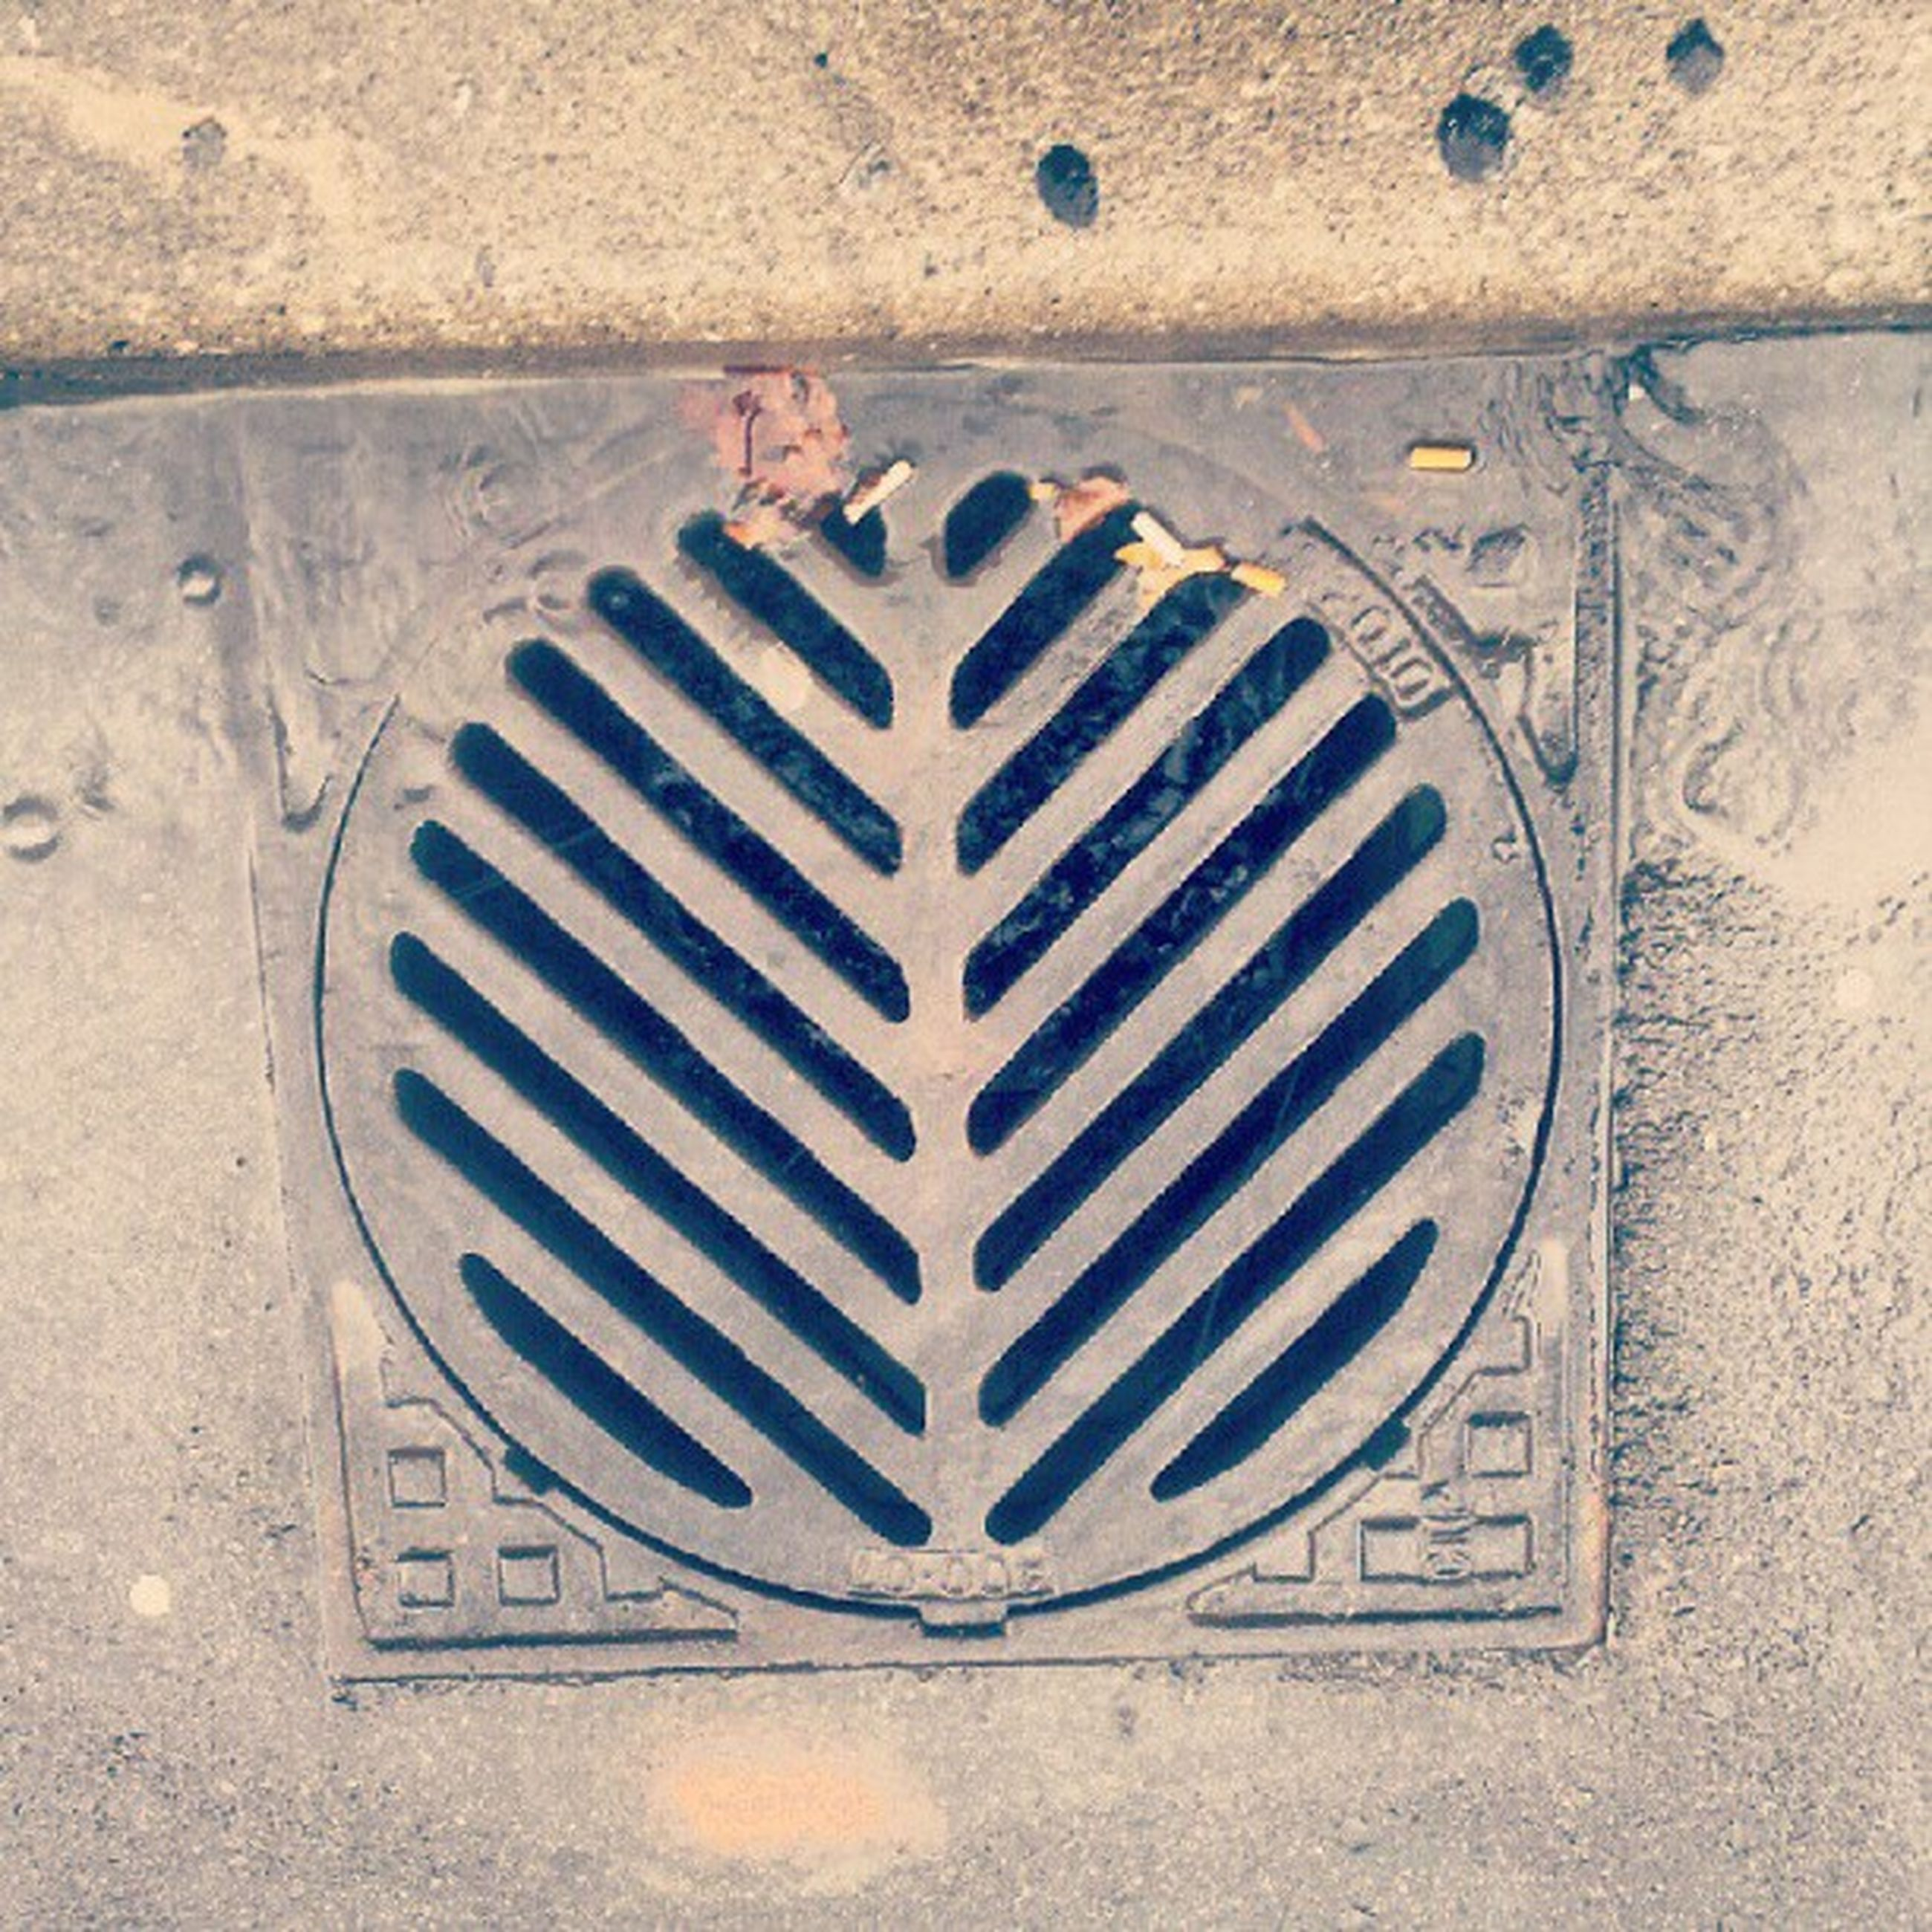 wall - building feature, built structure, pattern, architecture, textured, high angle view, close-up, wall, circle, no people, metal, old, geometric shape, day, communication, street, white color, outdoors, manhole, shape